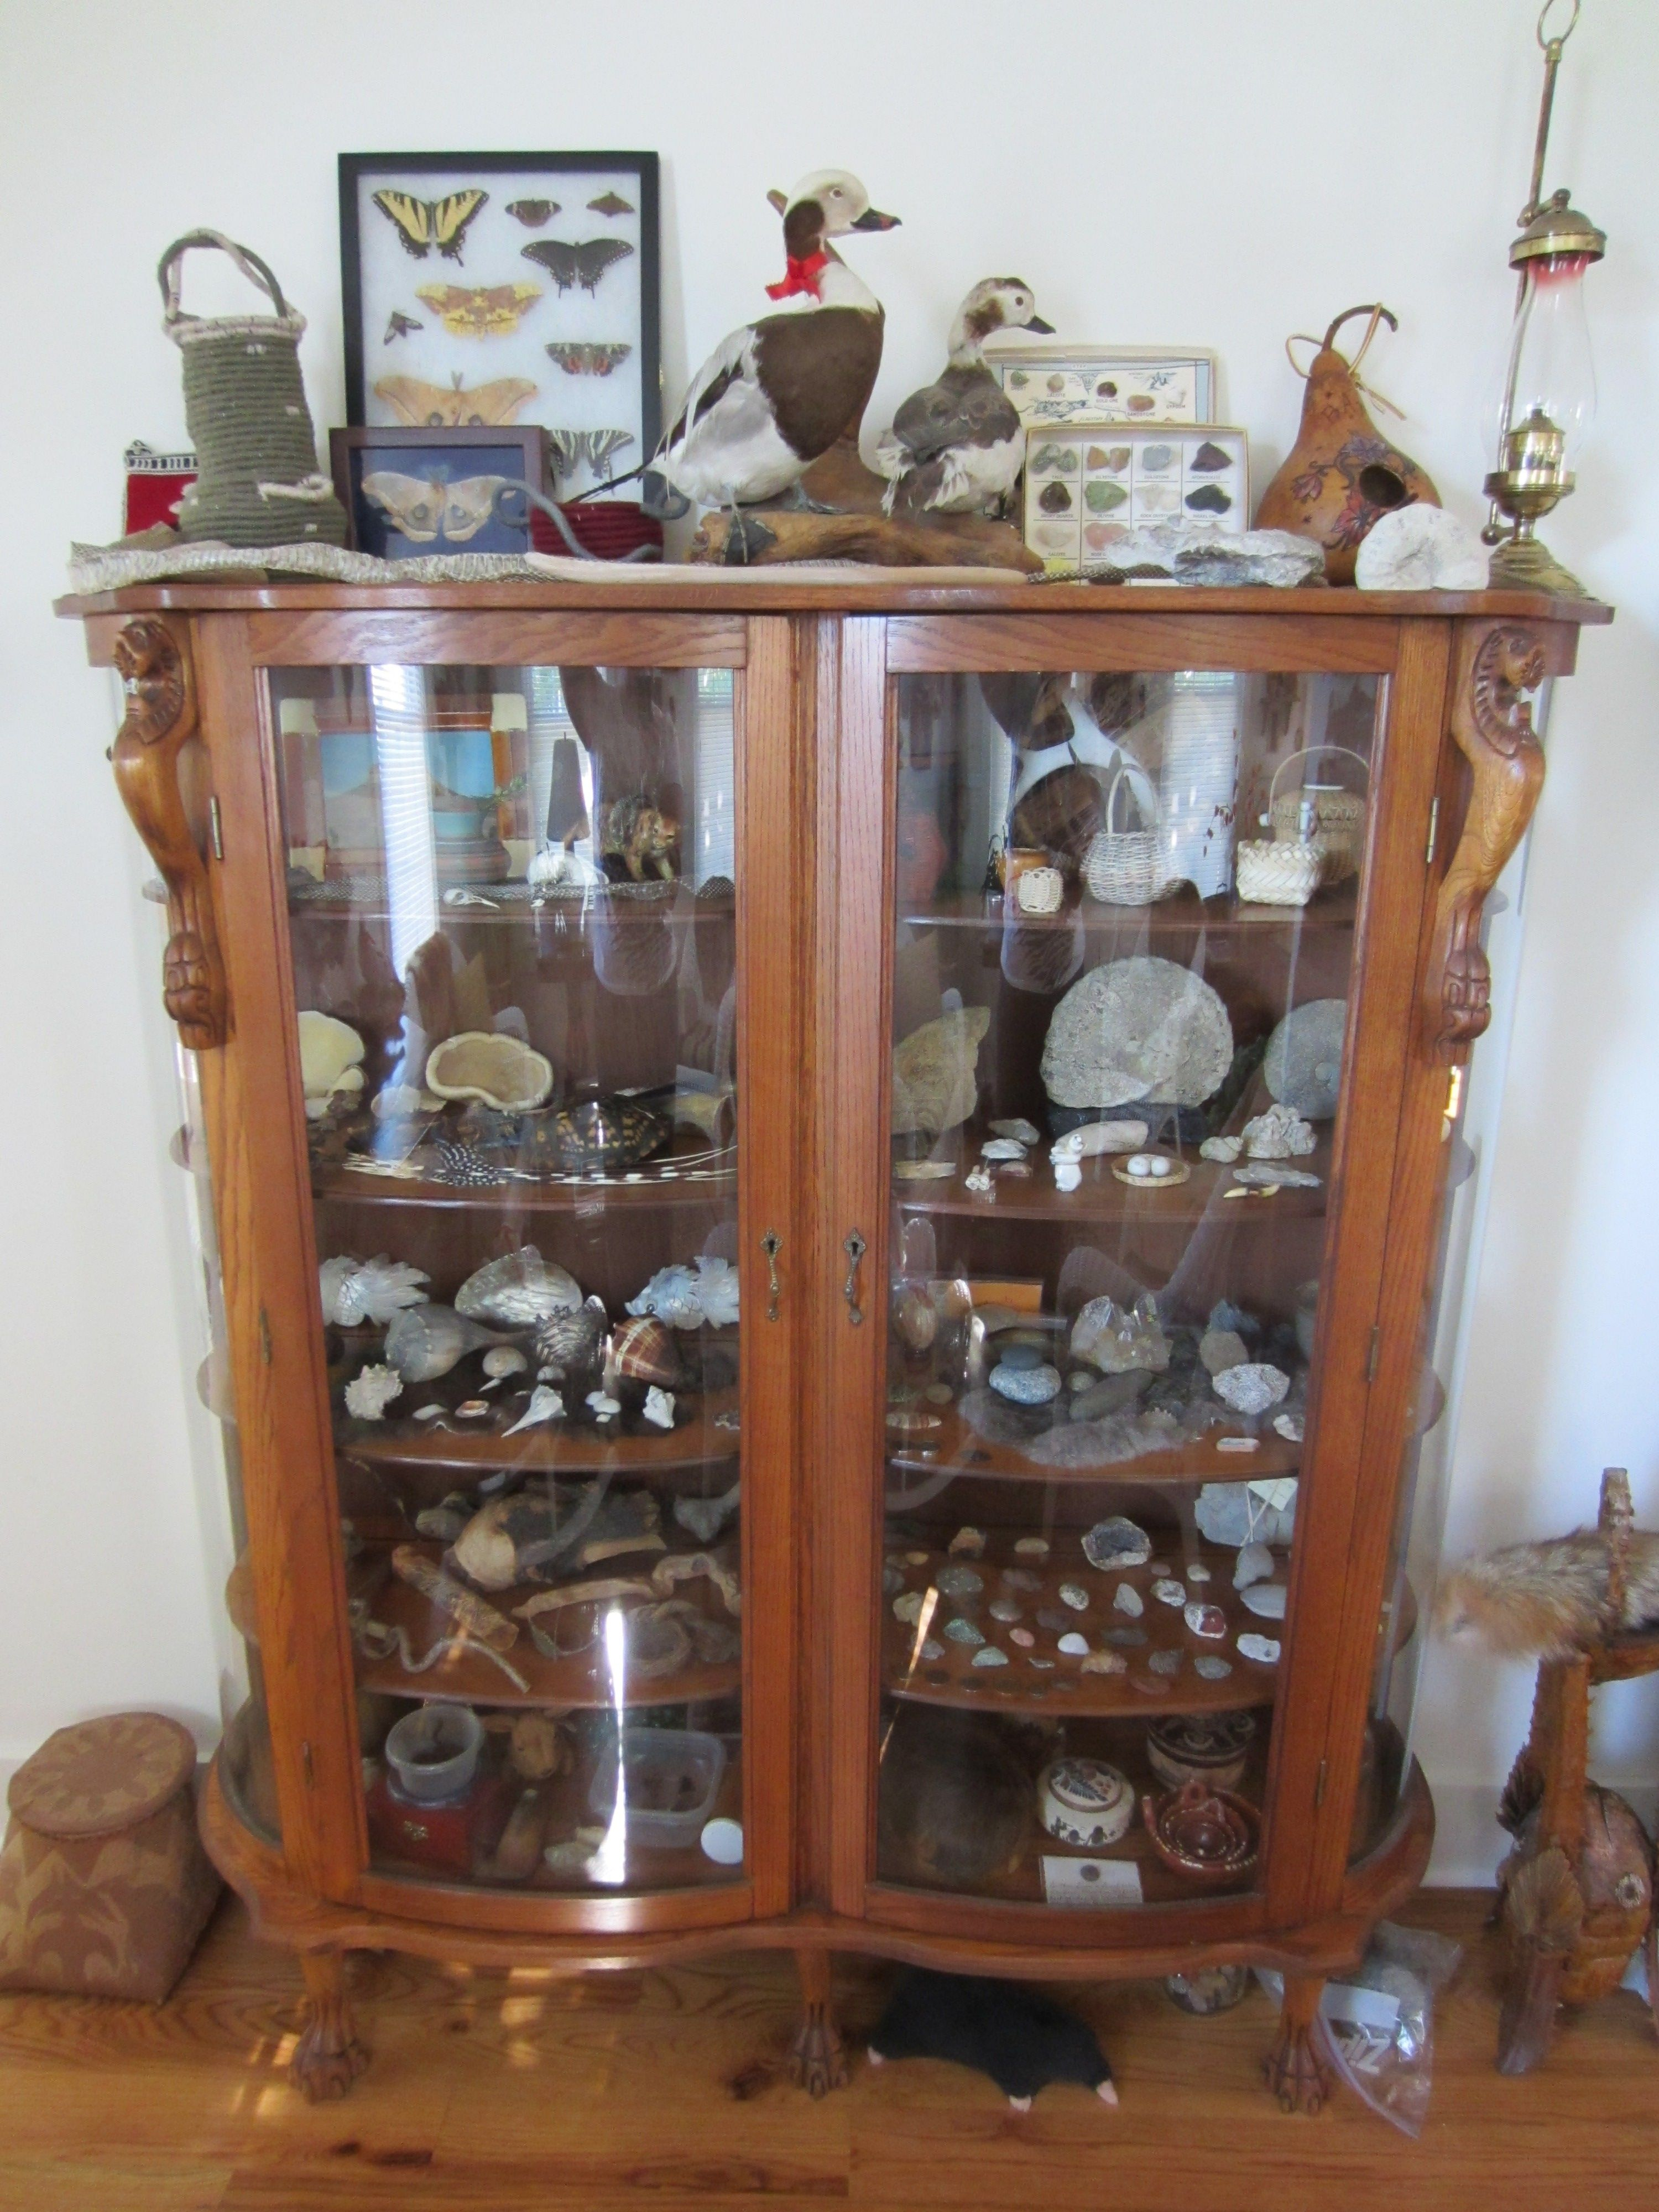 Oak reproduction china cabinet repurposed to a Naturalist science